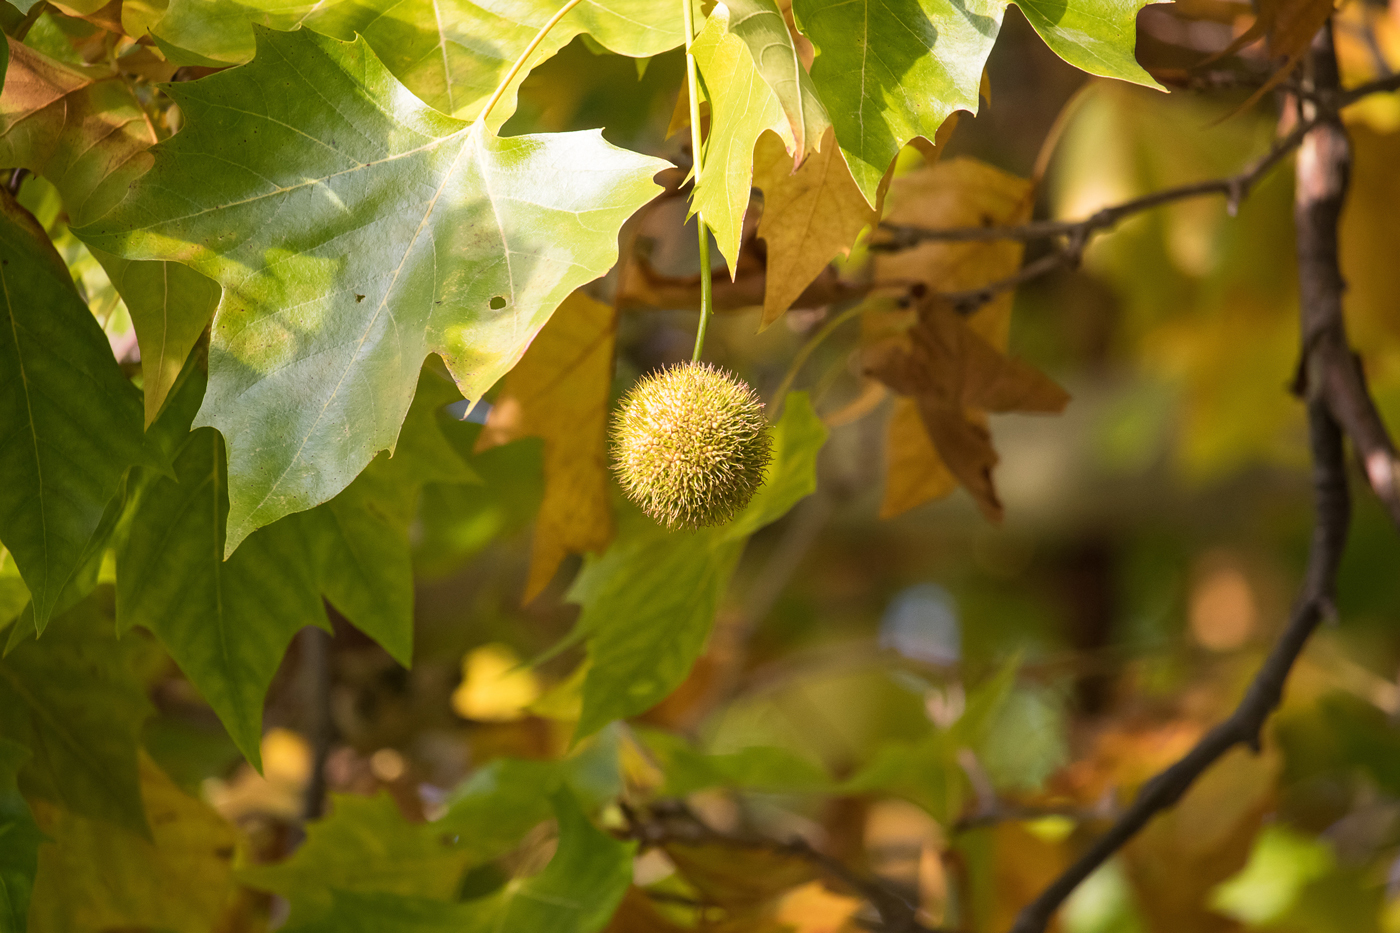 The fruit from a sycamore tree hanging amongst its leaves